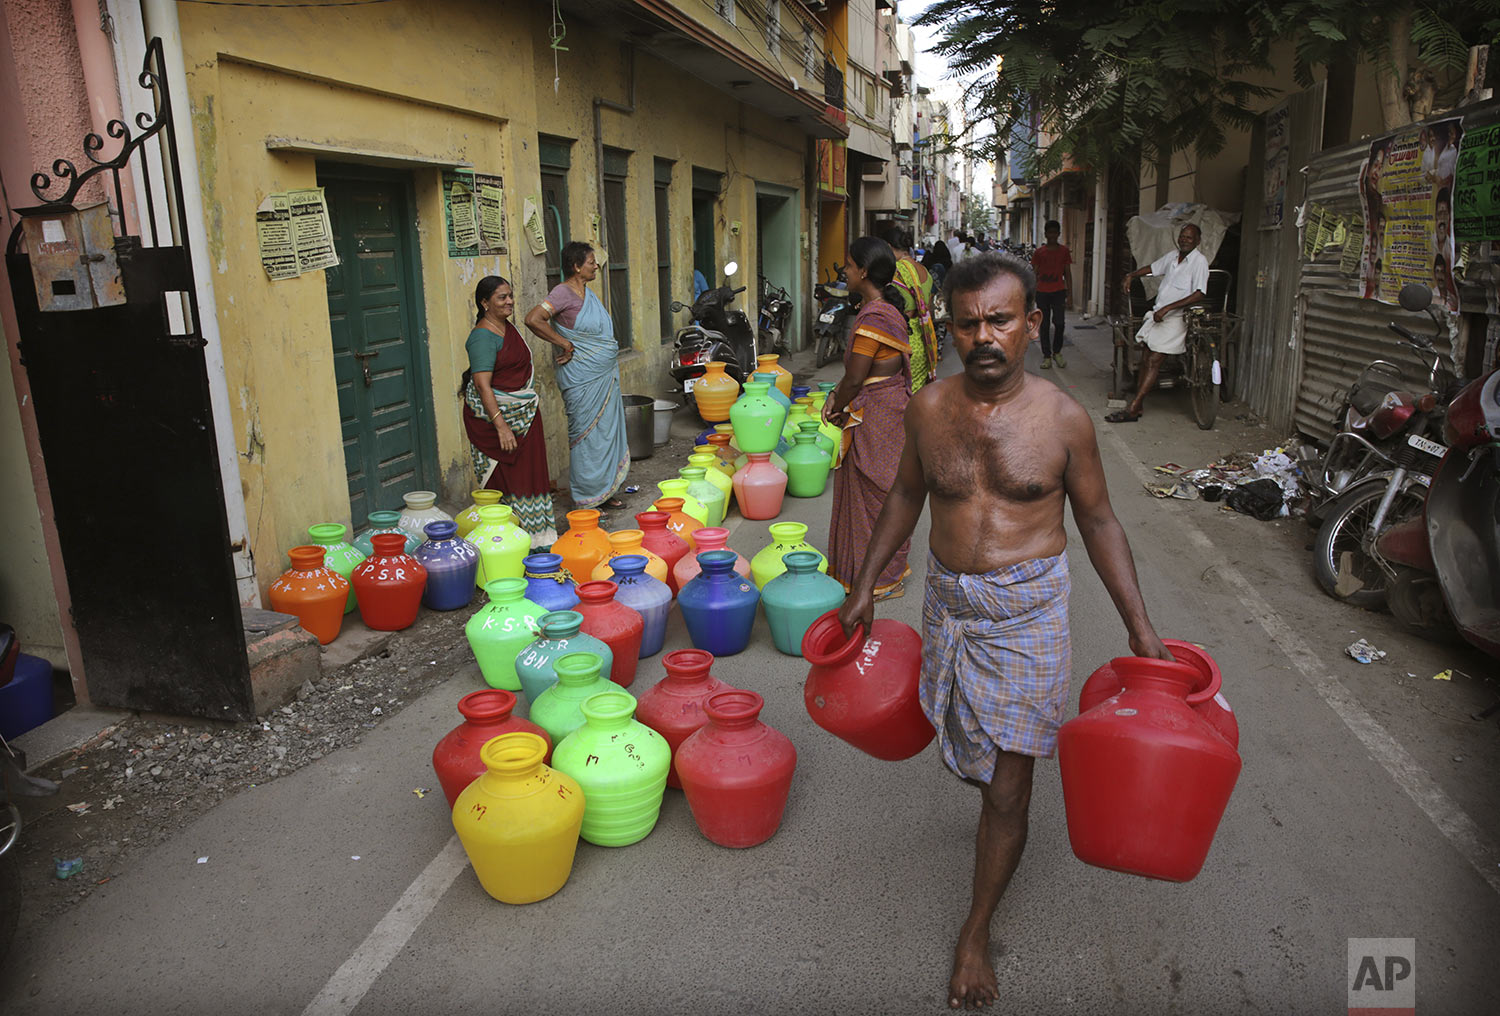 Residents wait for water trucks to arrive in Chennai in Southern Indian state of Tamil Nadu, Monday, July 15, 2019. (AP Photo/Manish Swarup)